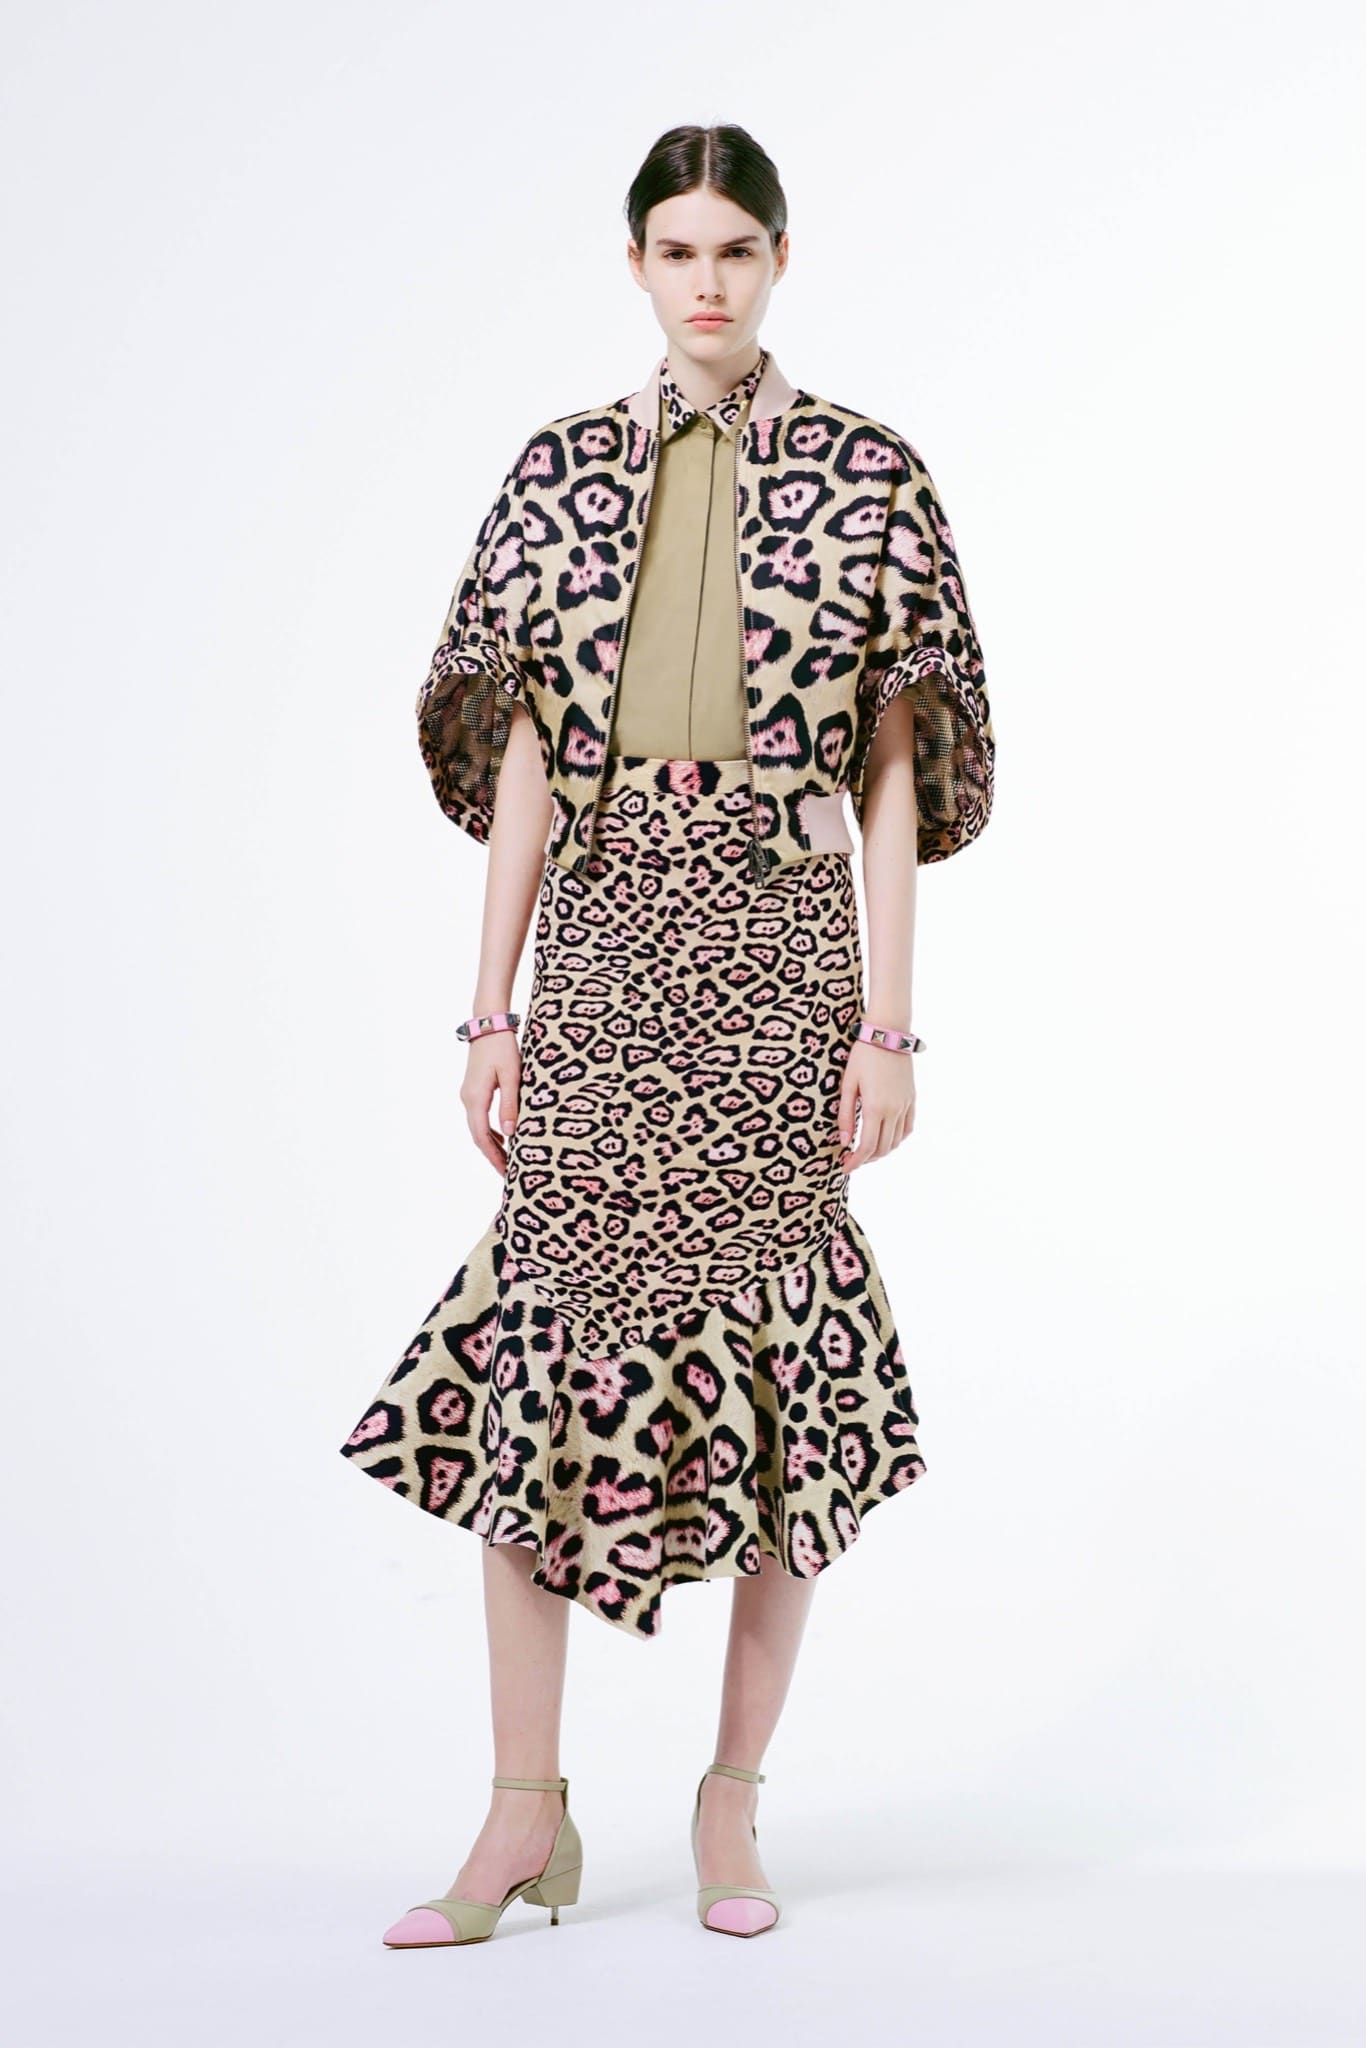 Givenchy Resort 2016 Collection featuring Green Leopard Print ... 7ccad7b07